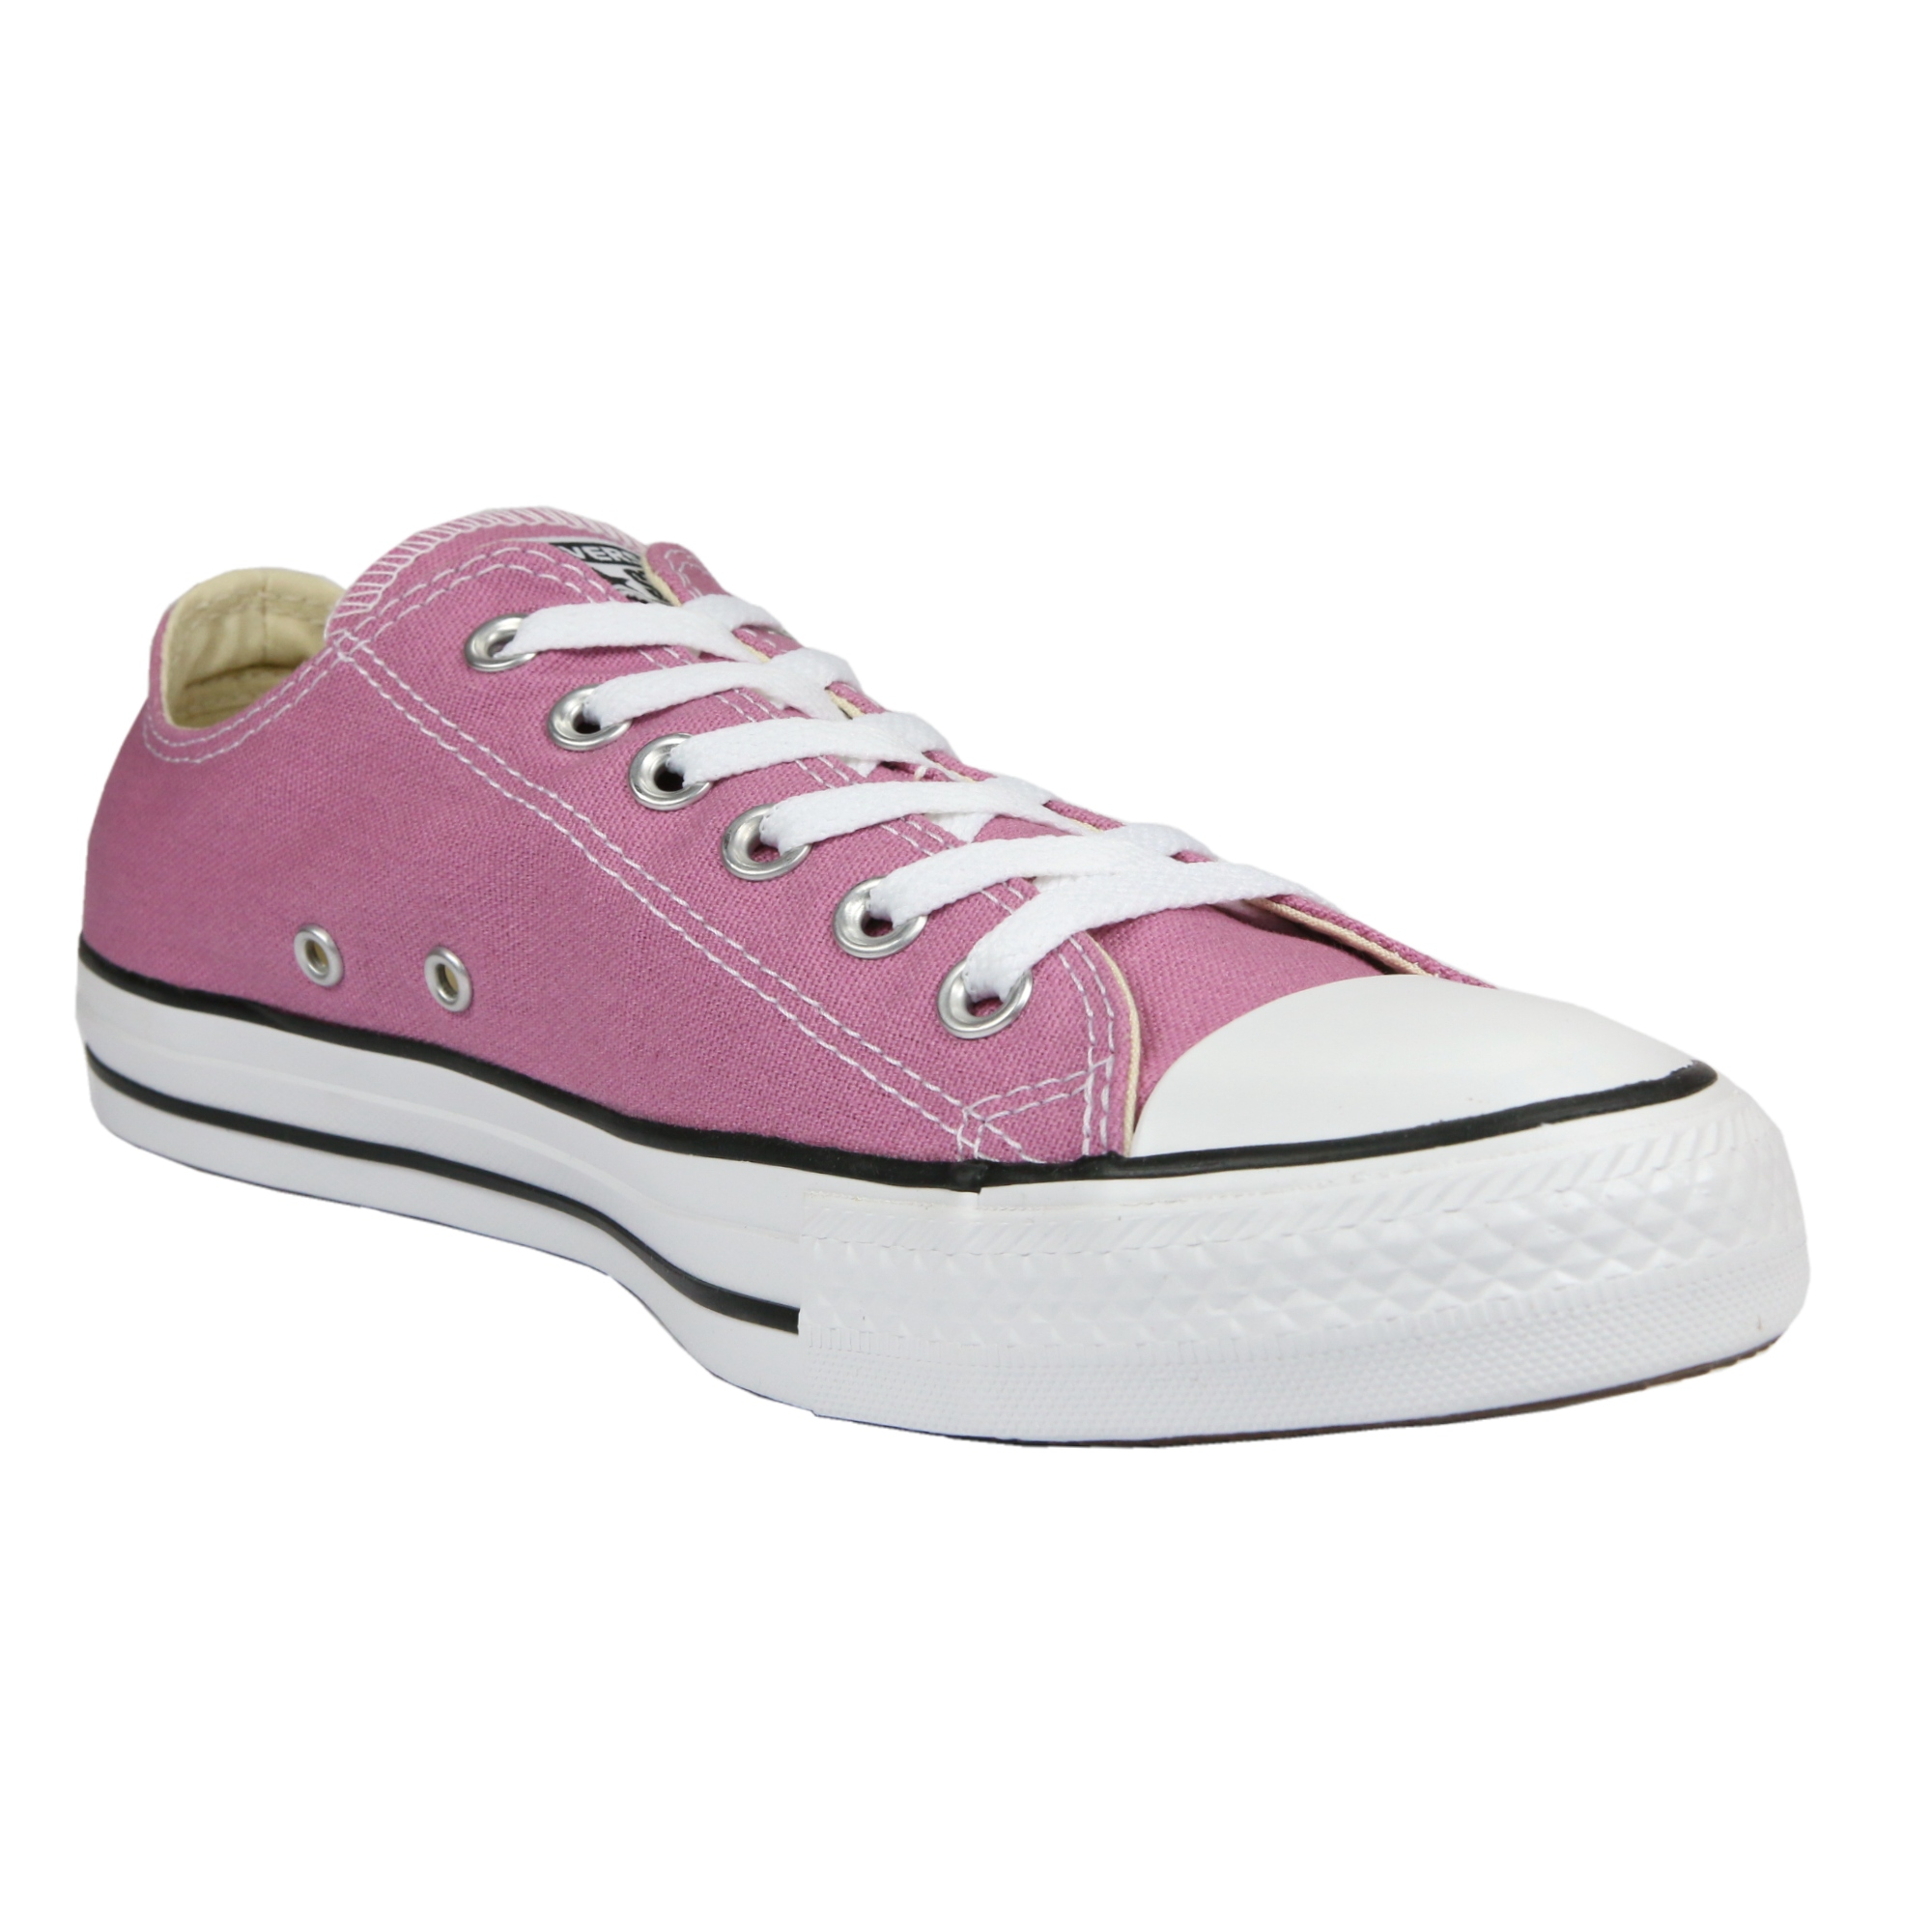 converse all star chuck taylor ox shoes trainers ladies. Black Bedroom Furniture Sets. Home Design Ideas